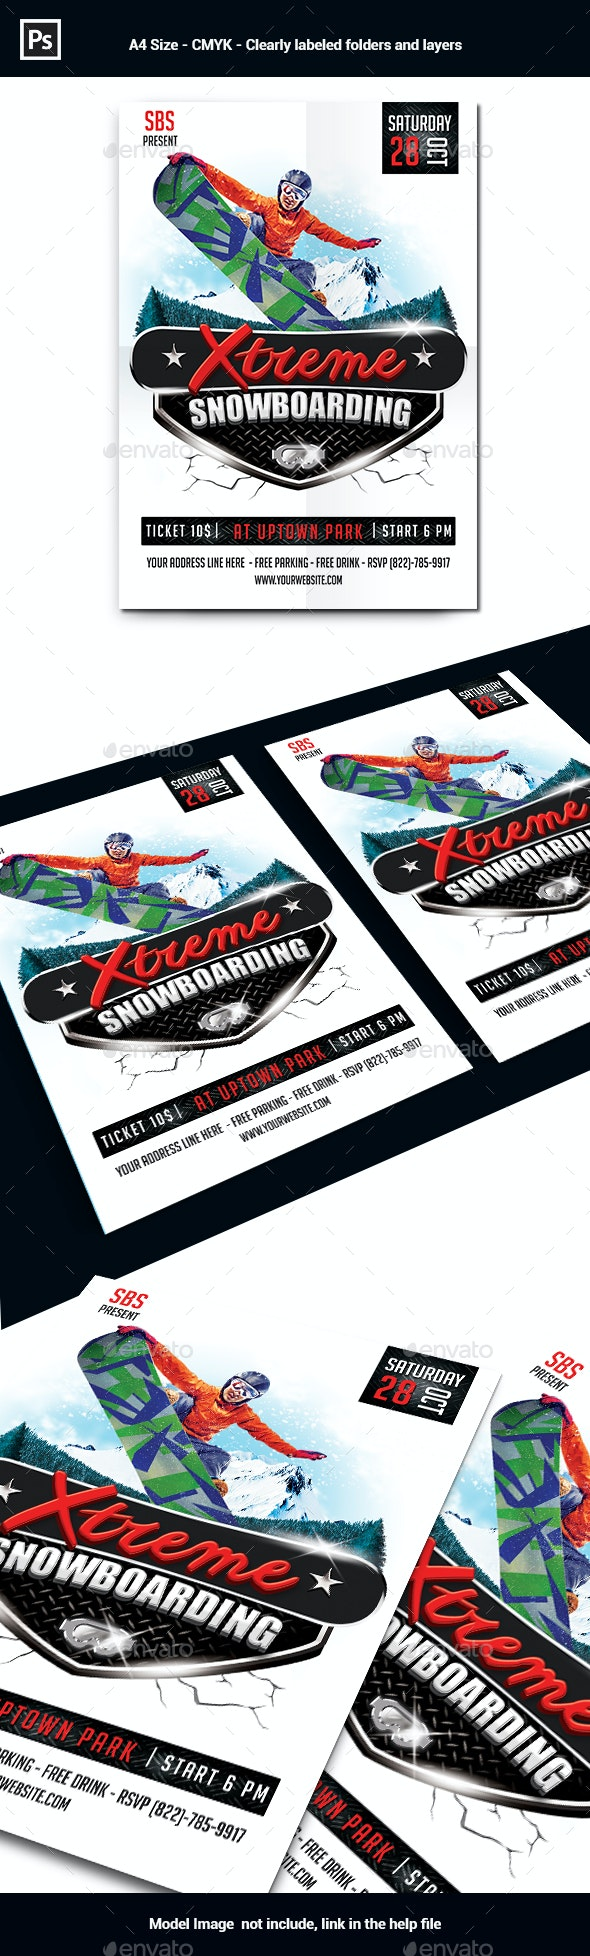 Extreme Snowboarding Flyer Template - Sports Events